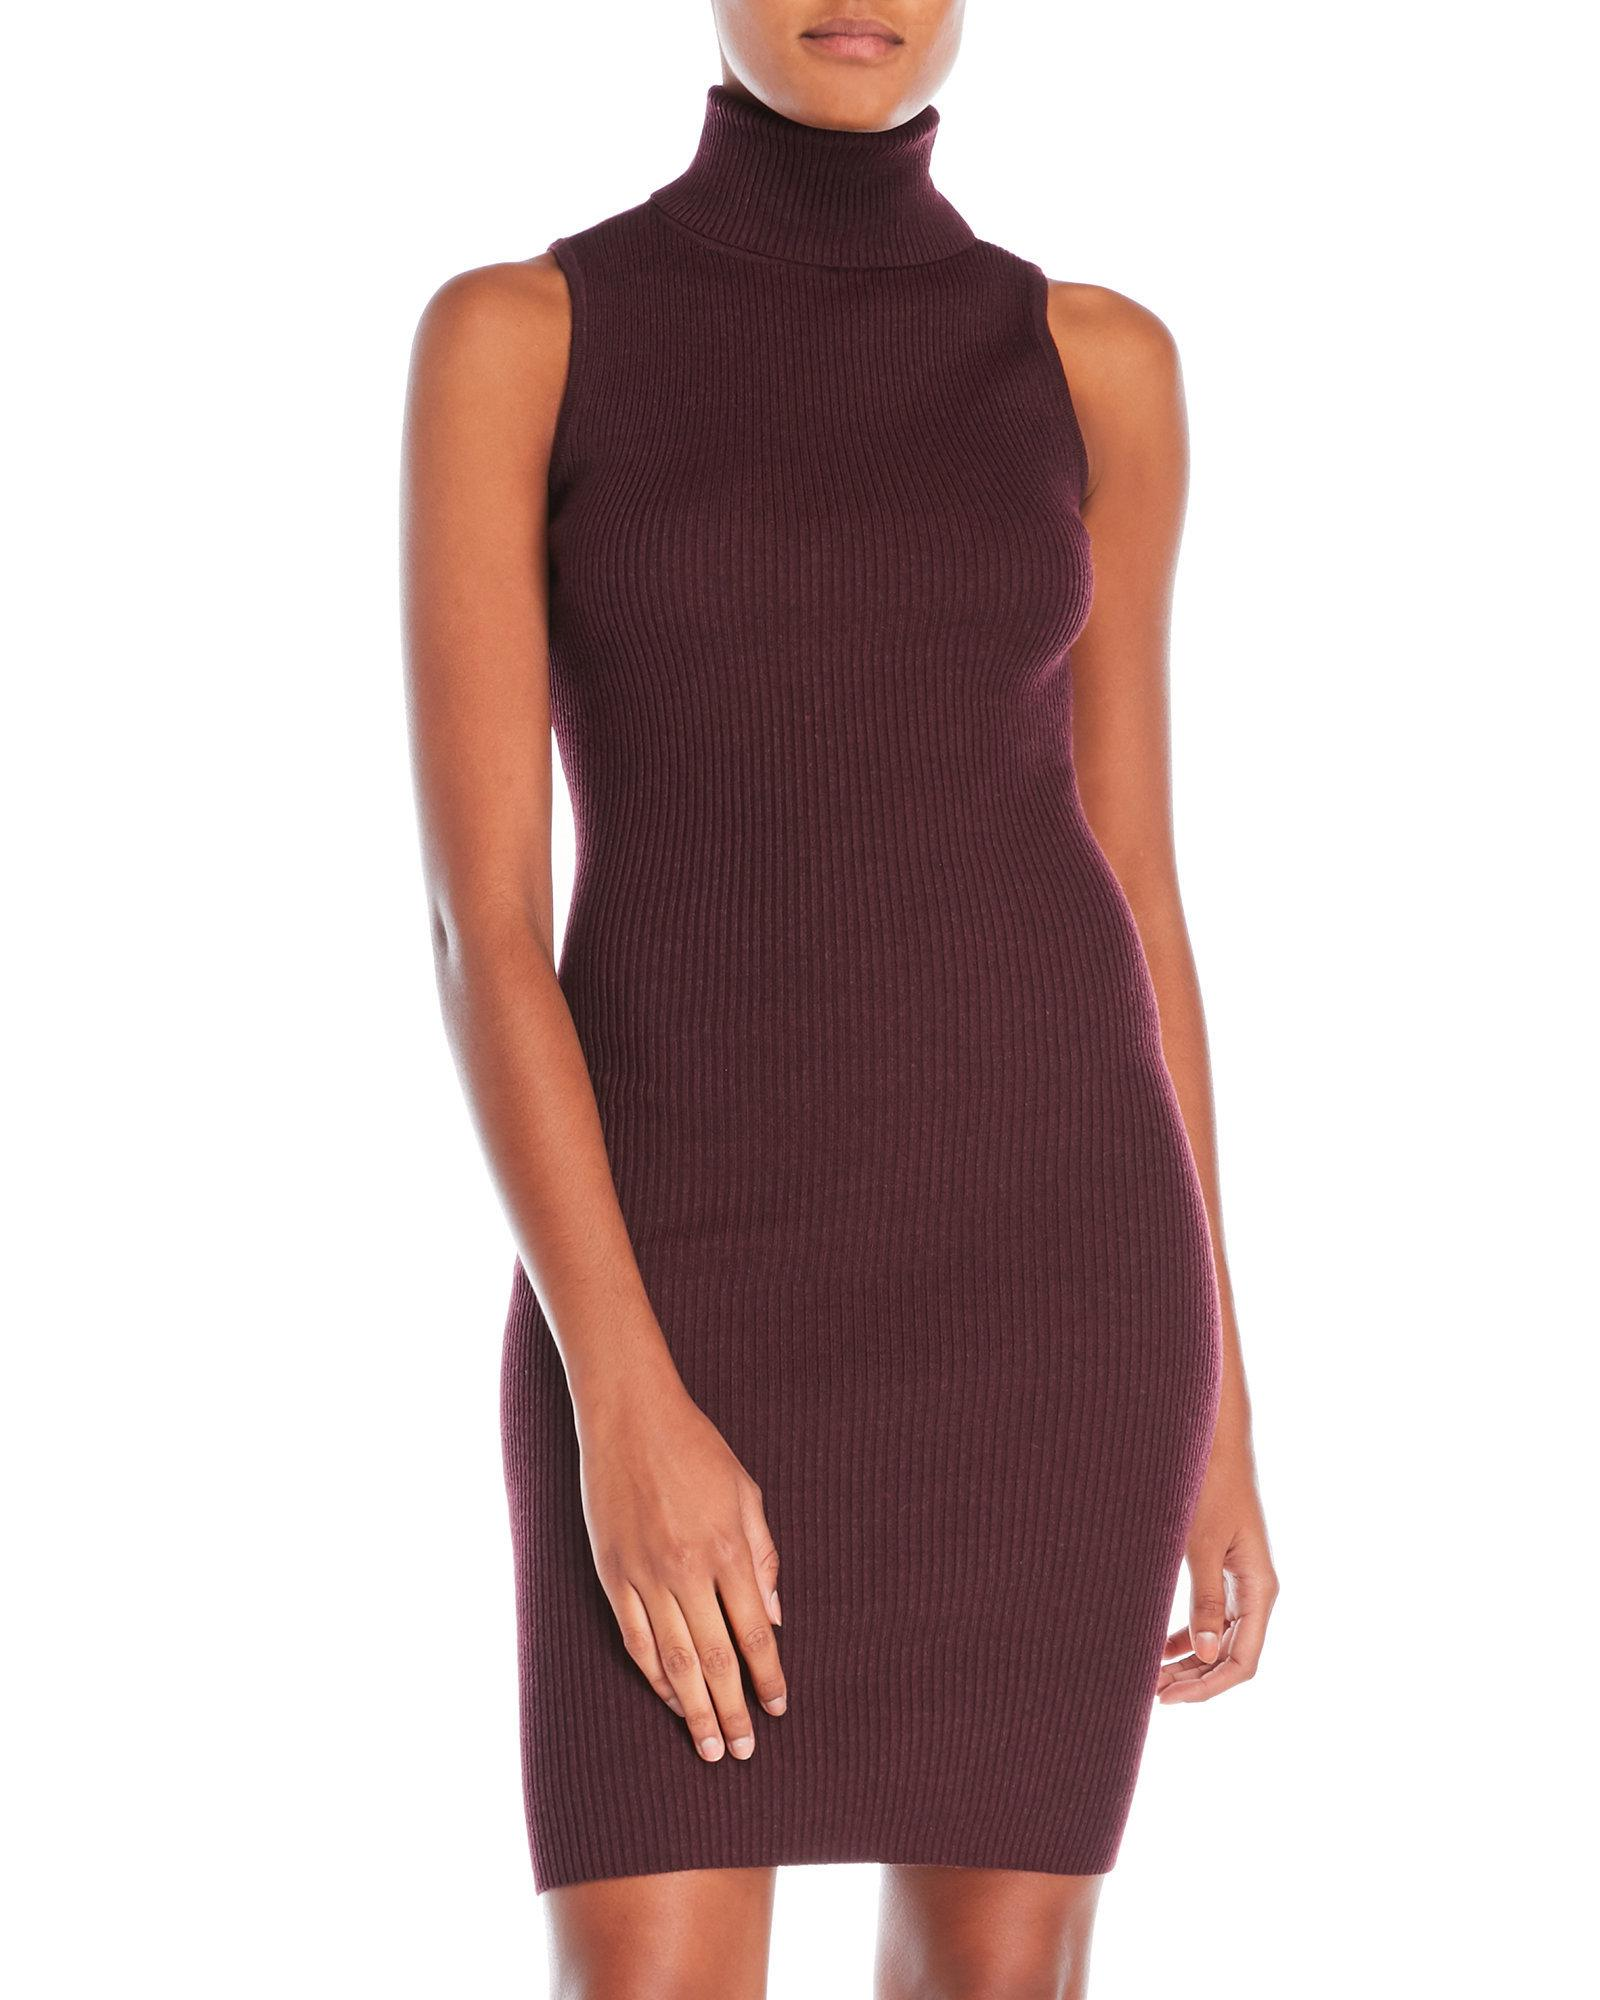 Lyst - Romeo and Juliet Couture Turtleneck Ribbed Dress in Red a74dd9ef6